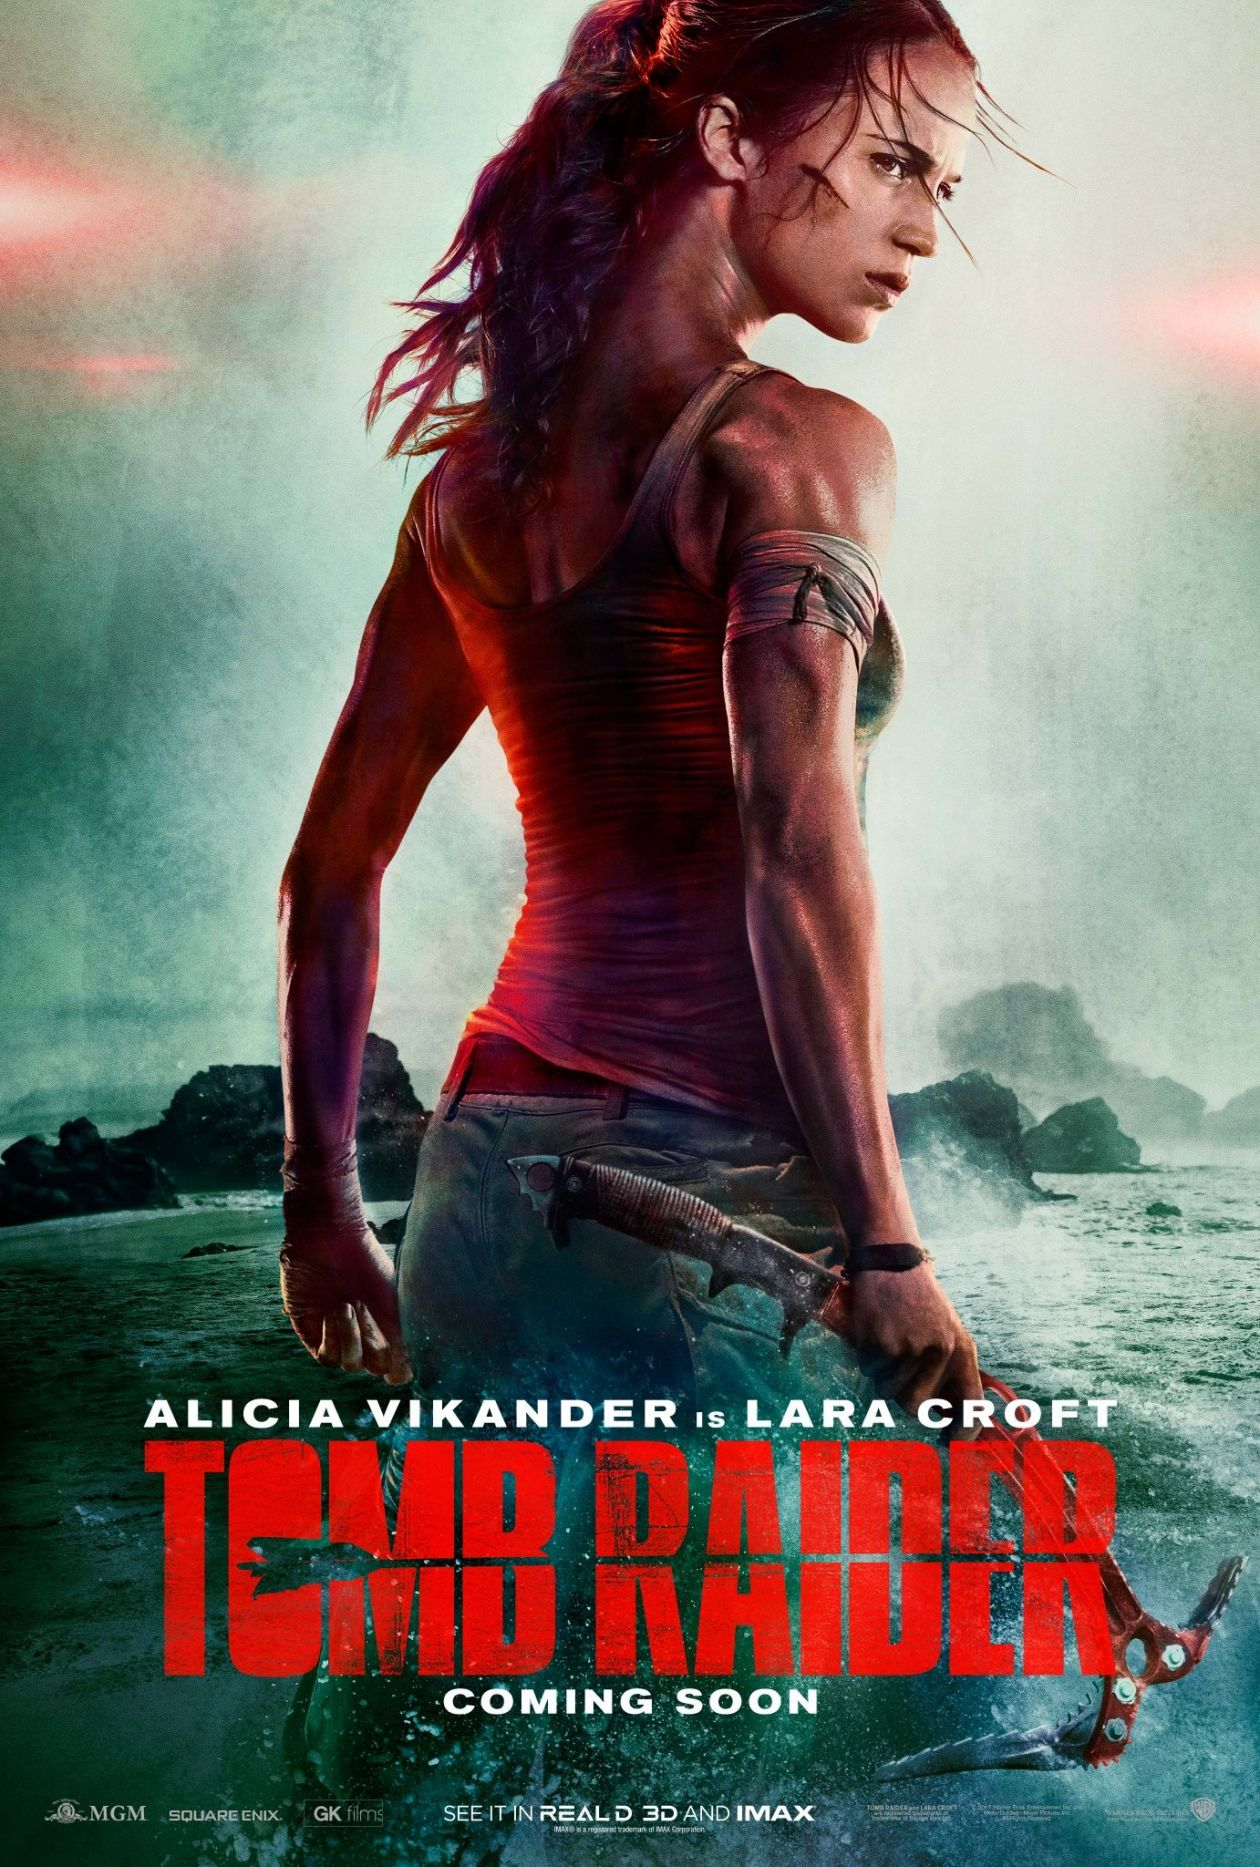 Alicia Vikander / Lara Croft / Tomb Raider 2018 Movie Poster Affiche film